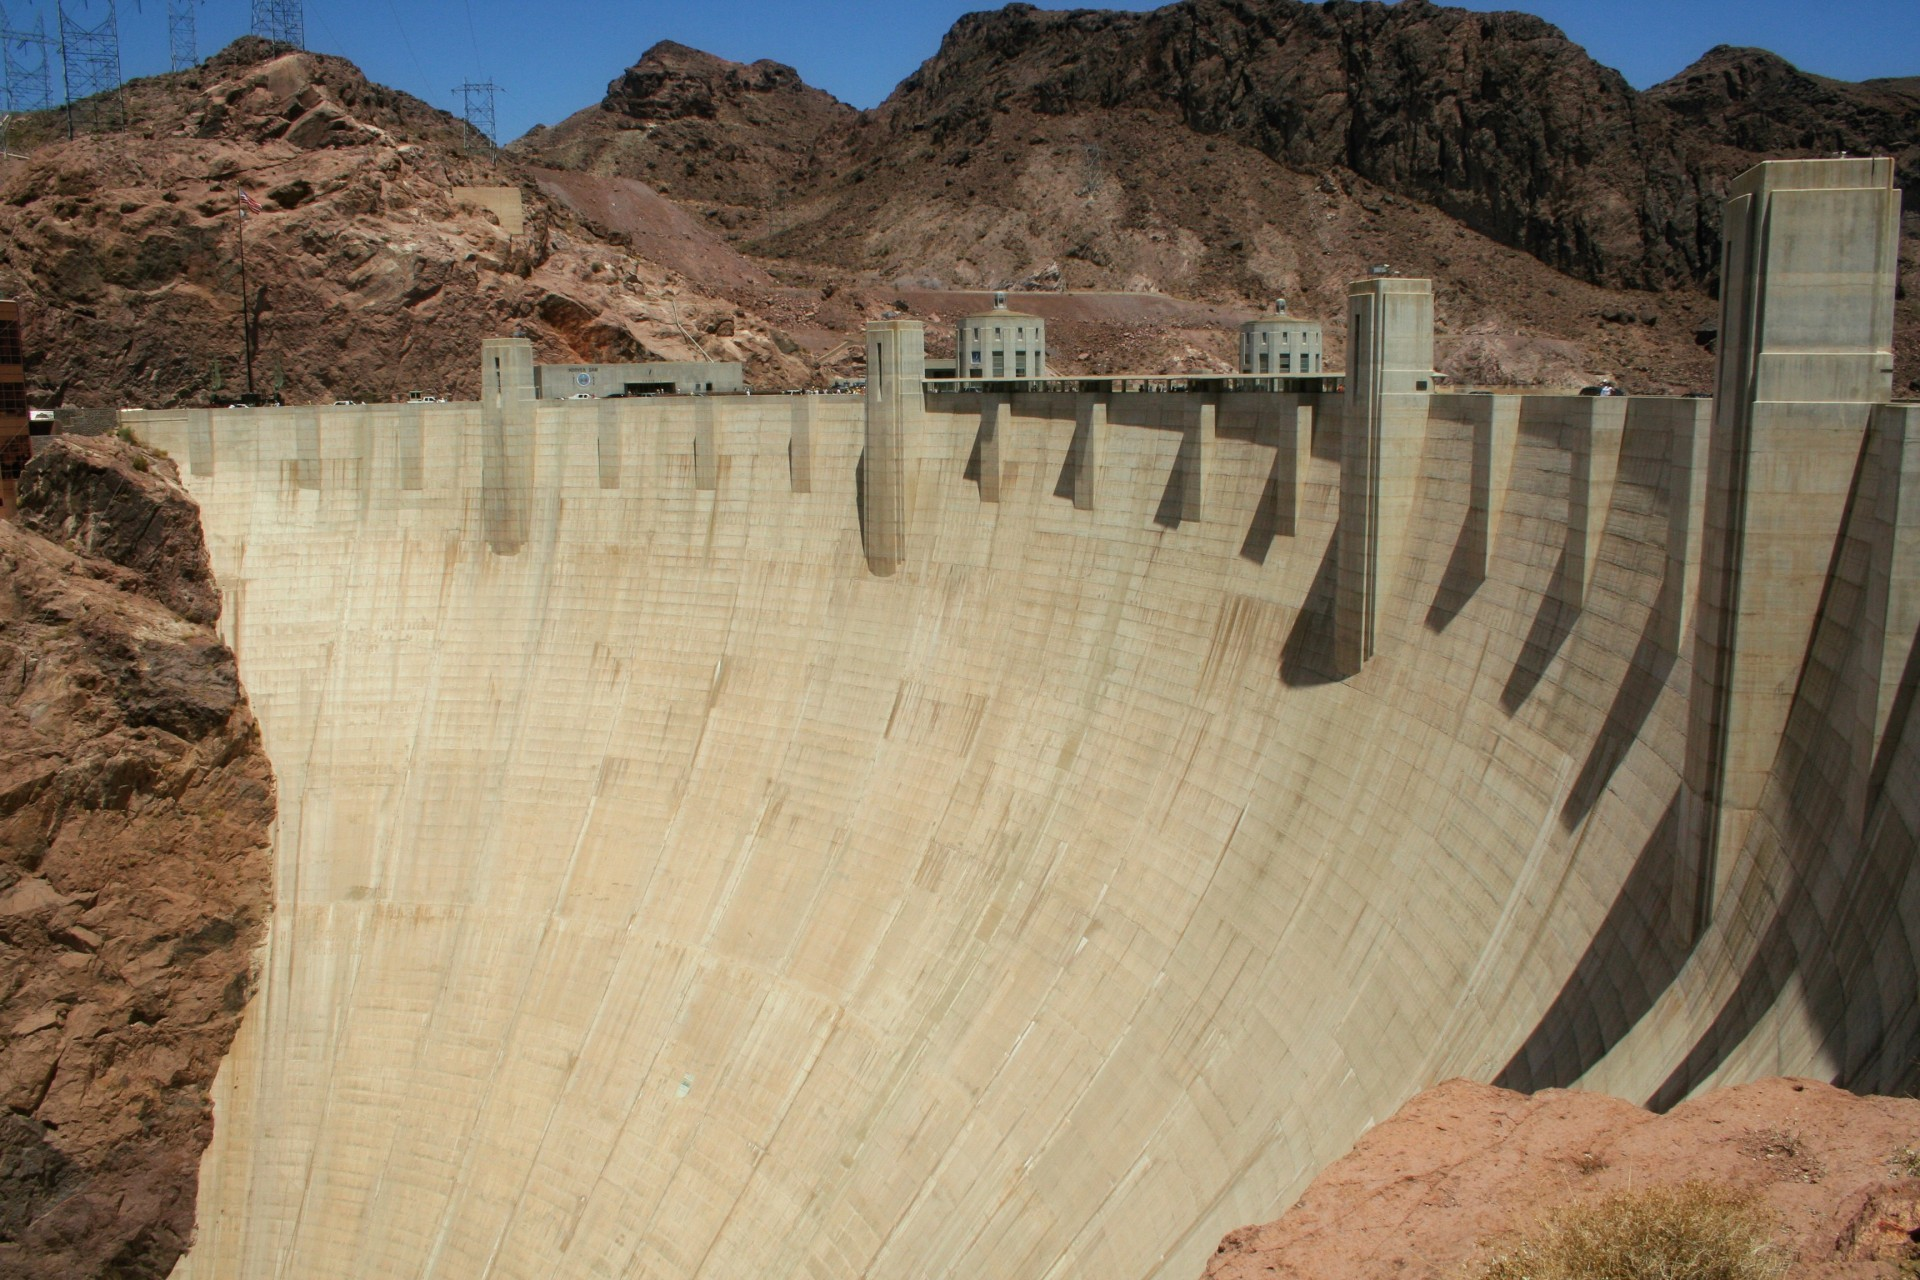 The wall of the Hoover Dam